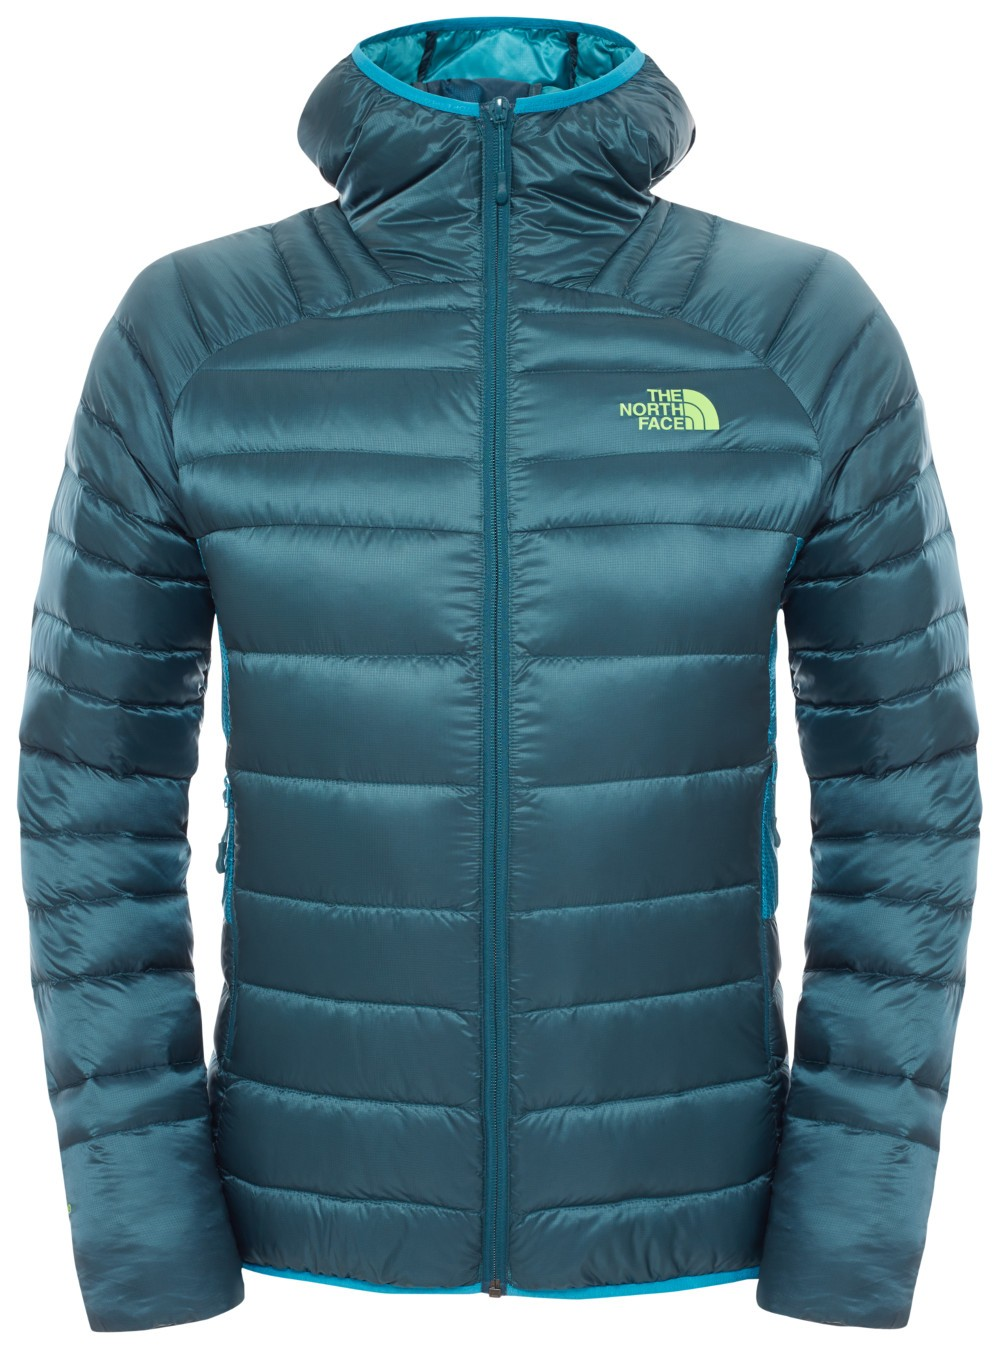 profesjonalna sprzedaż hurtownia online najlepsza obsługa KURTKA PUCHOWA THE NORTH FACE KEEP IT PURE HOODIE - DEPTH GREEN-ENAMEL BLUE